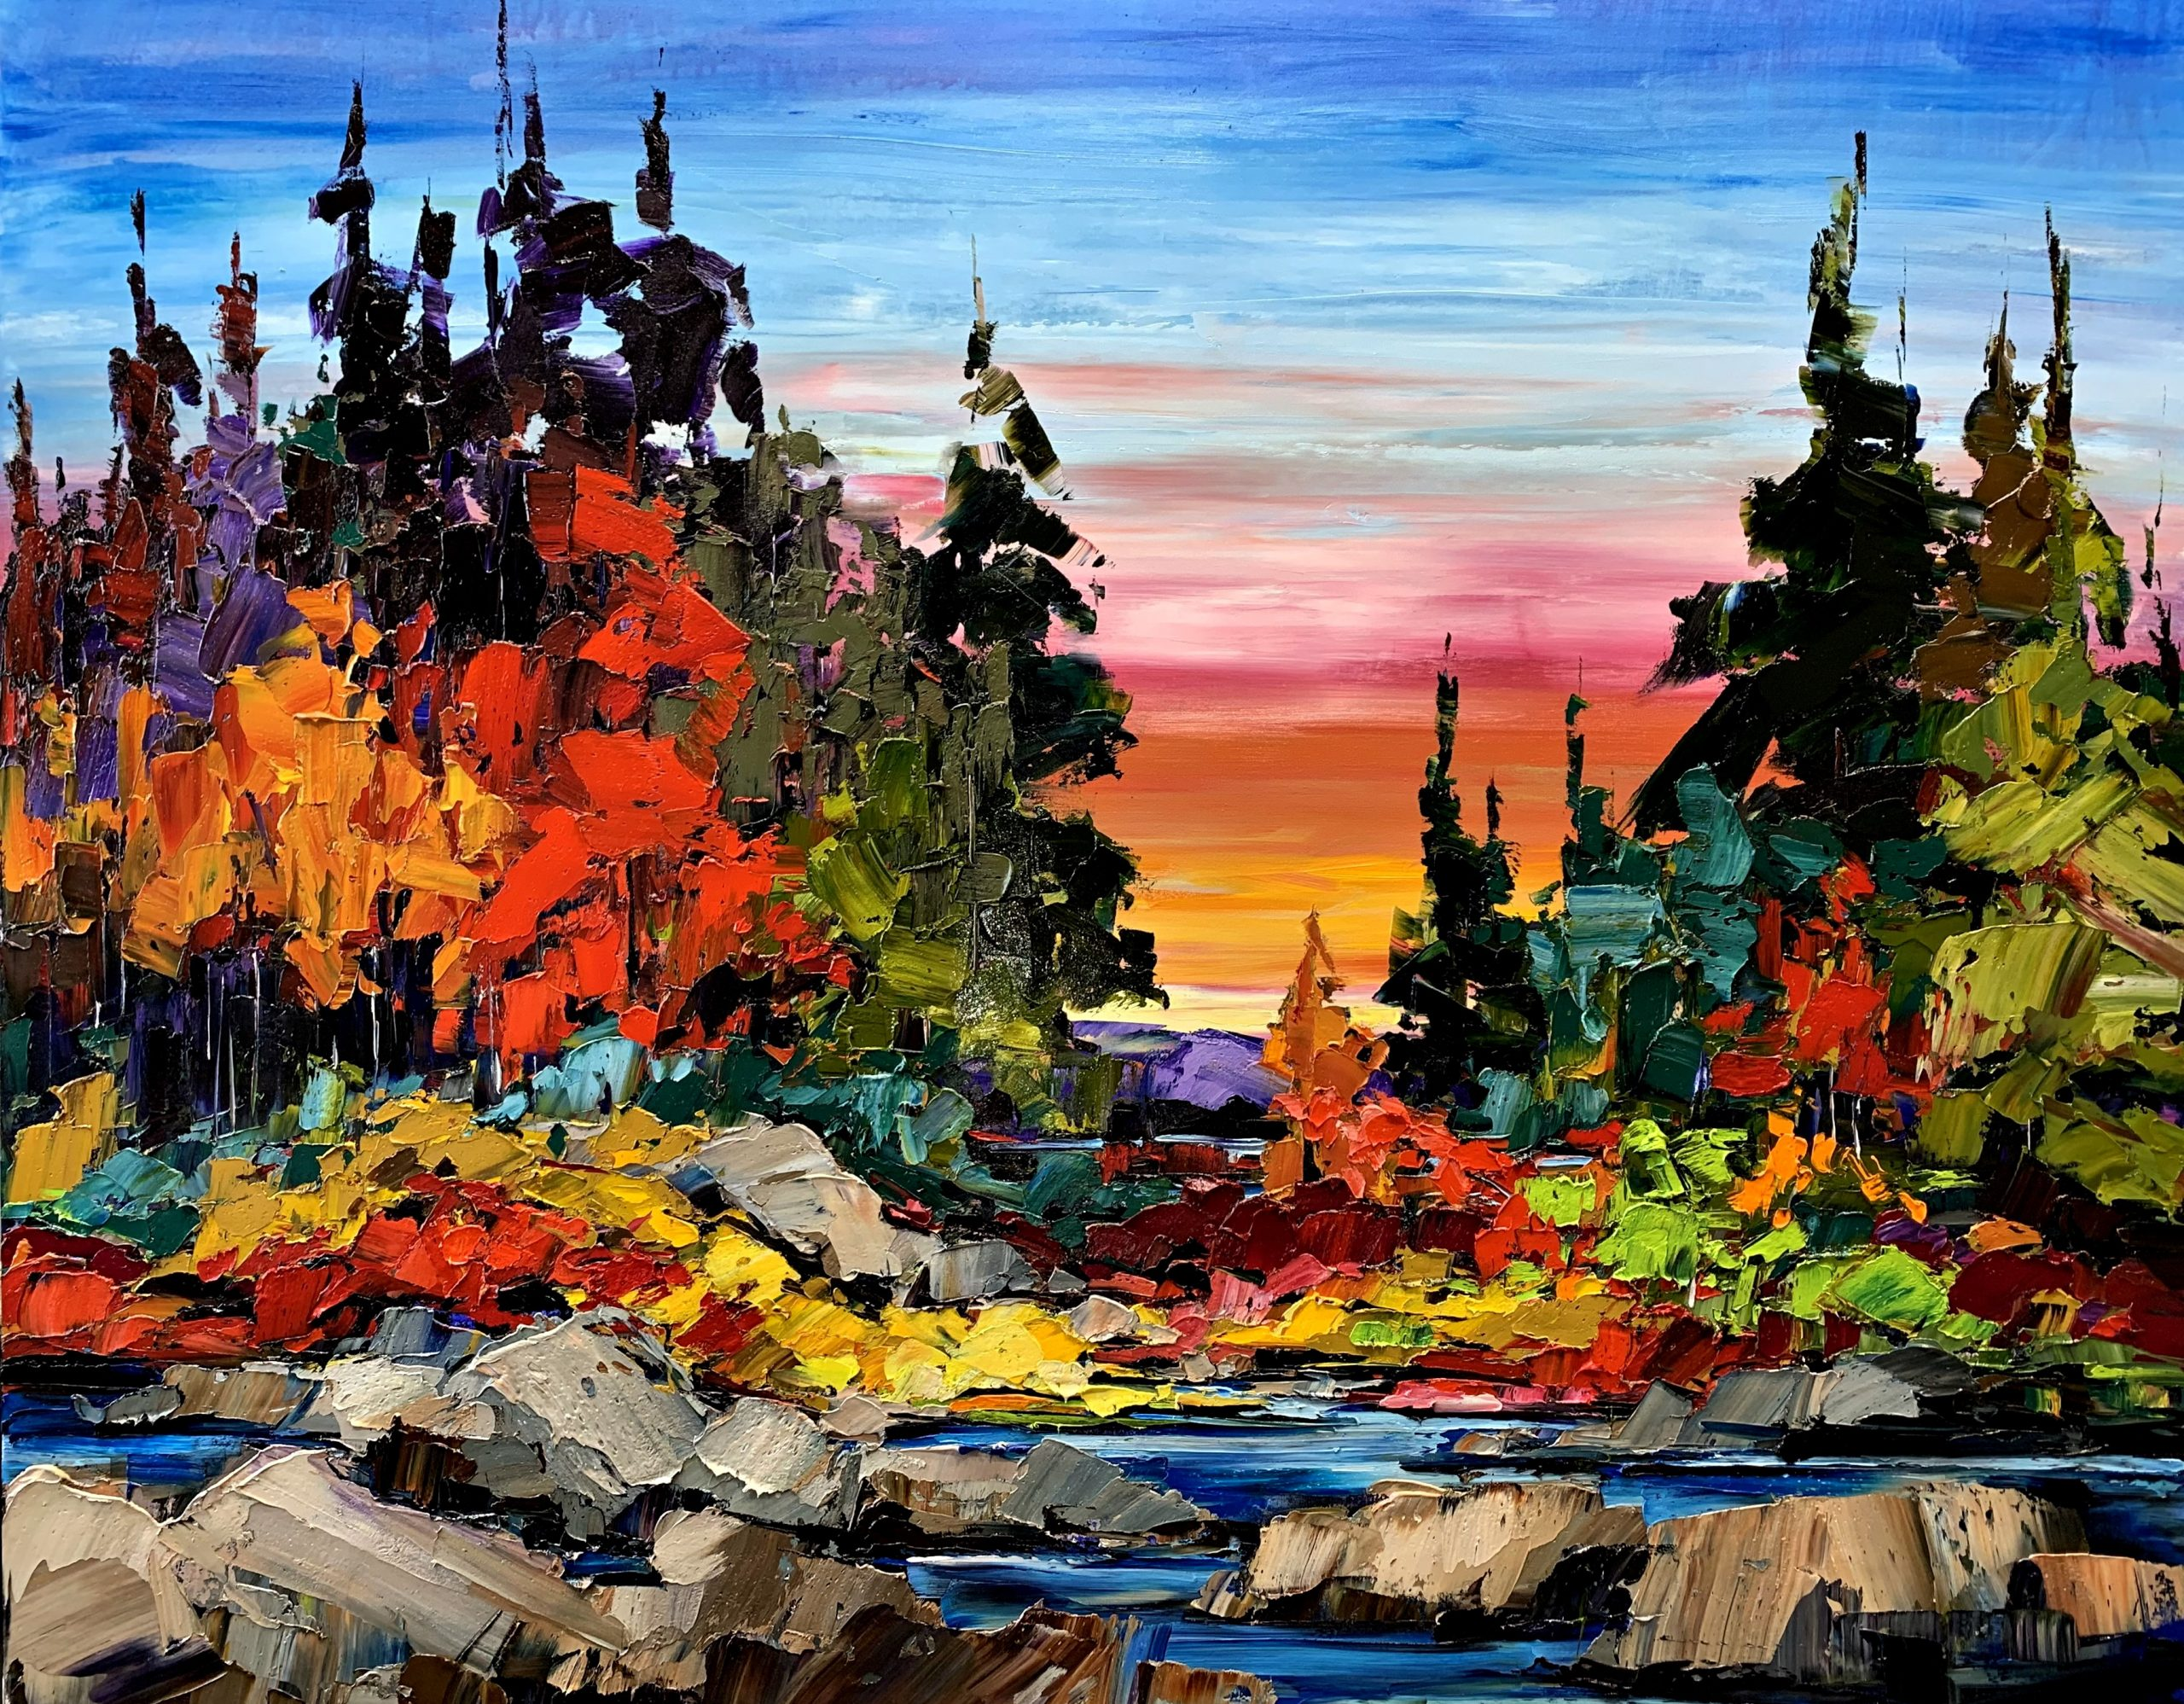 Chasing Shadows, landscape painting by Kimberly Kiel | Effusion Art Gallery + Cast Glass Studio, Invermere BC